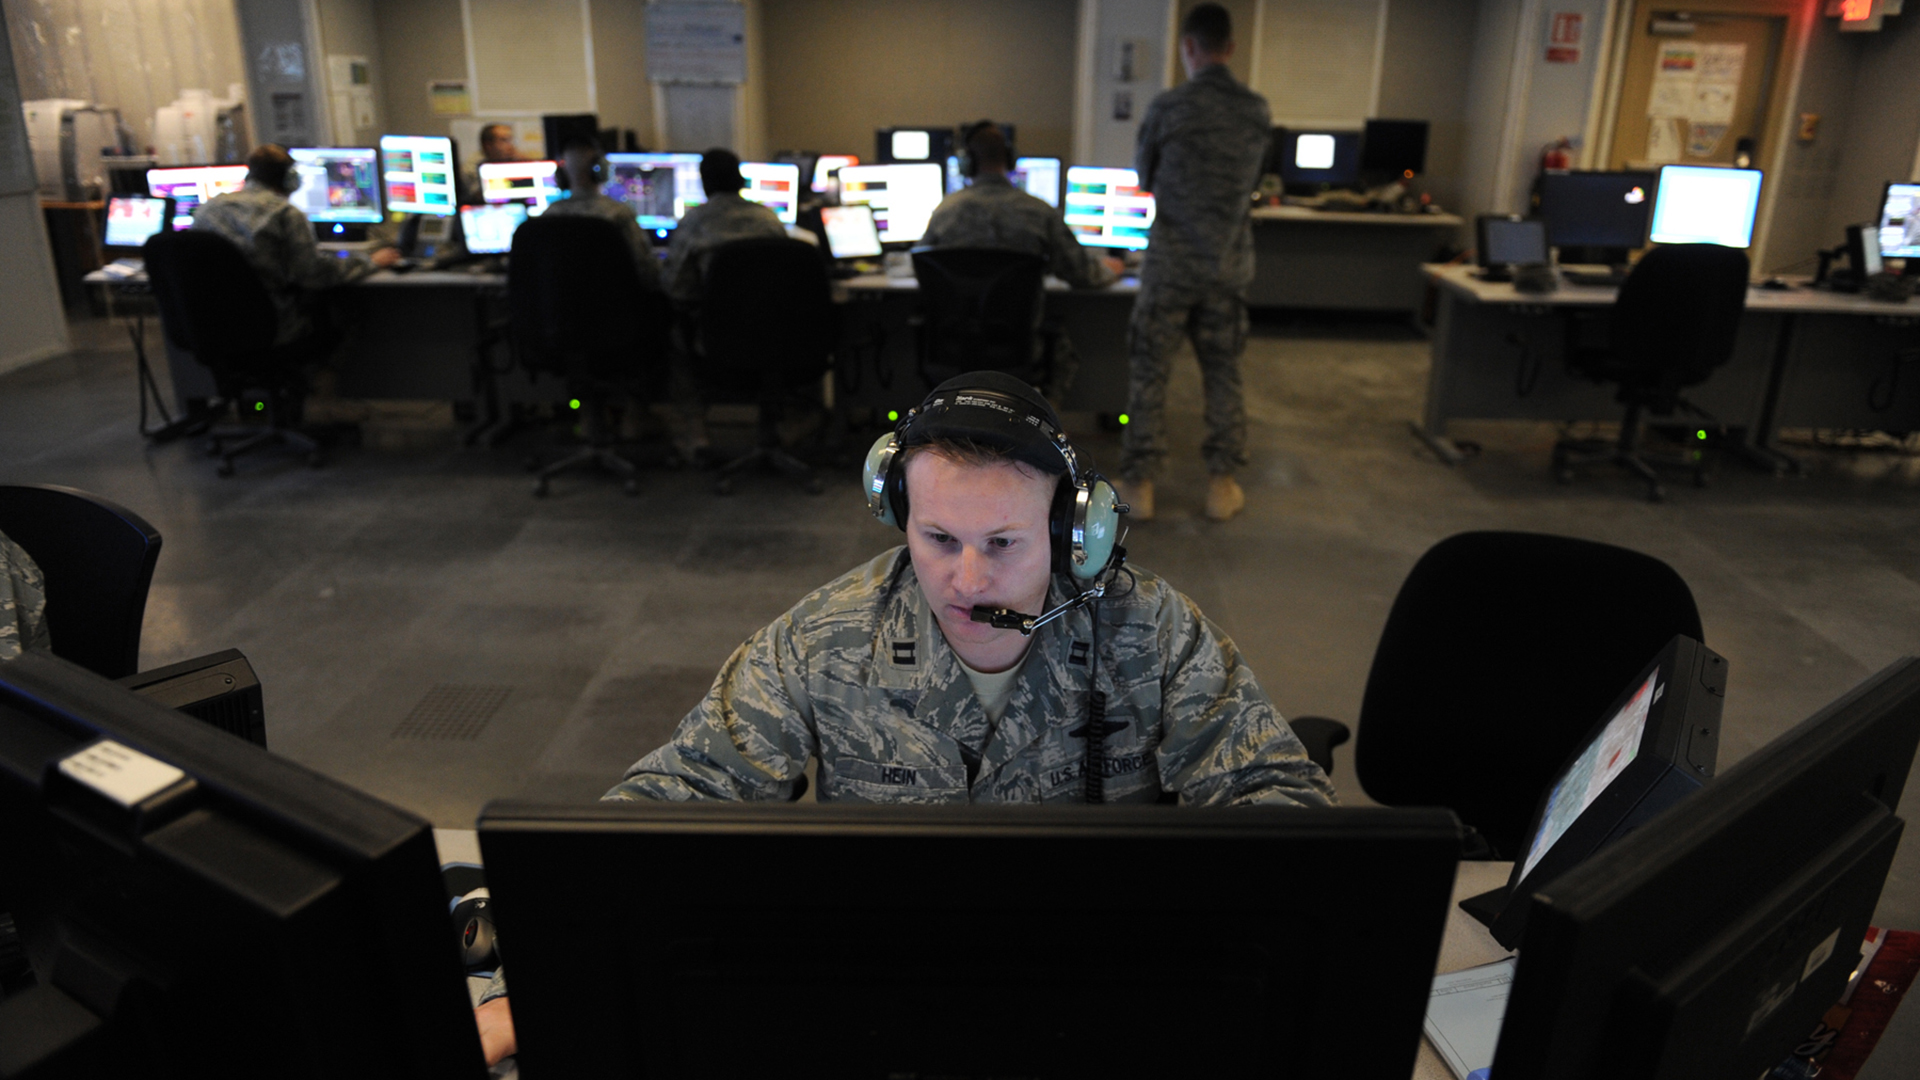 Soldier using the computer with a headset on